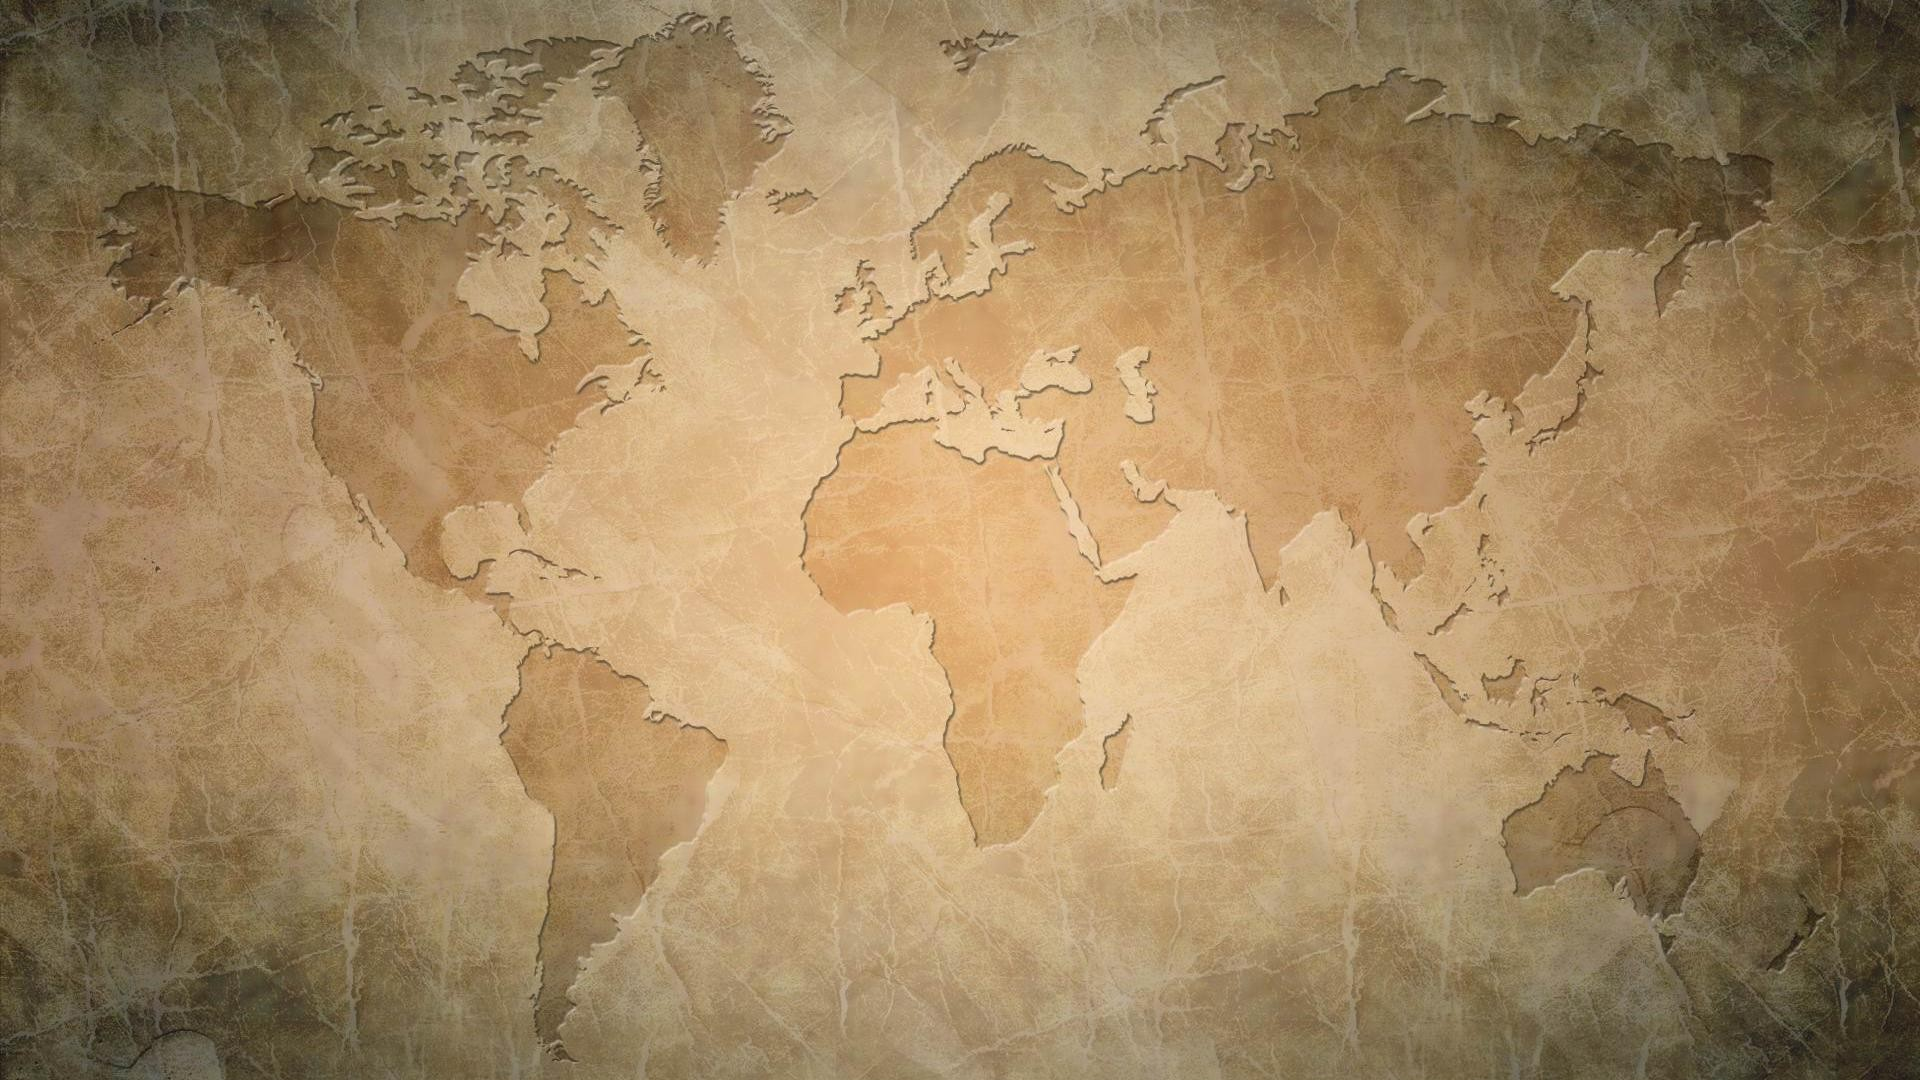 Map background download free hd backgrounds for desktop and 1920x1080 widescreen map background 1920x1080 for tablet gumiabroncs Choice Image